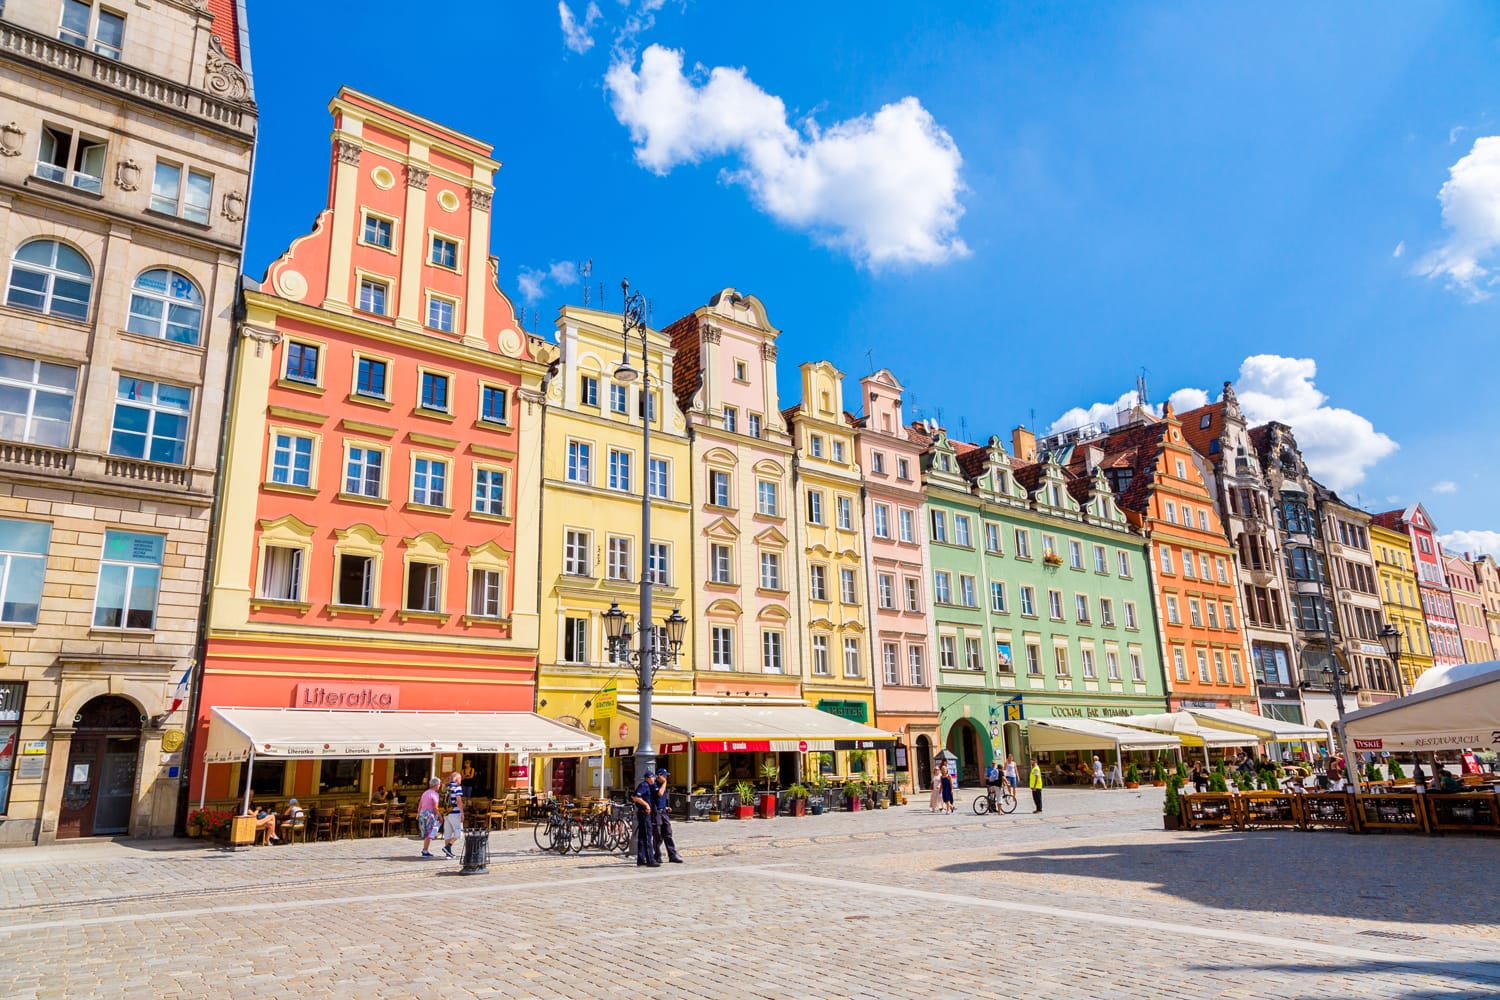 City center and Market Square in Wroclaw, Poland